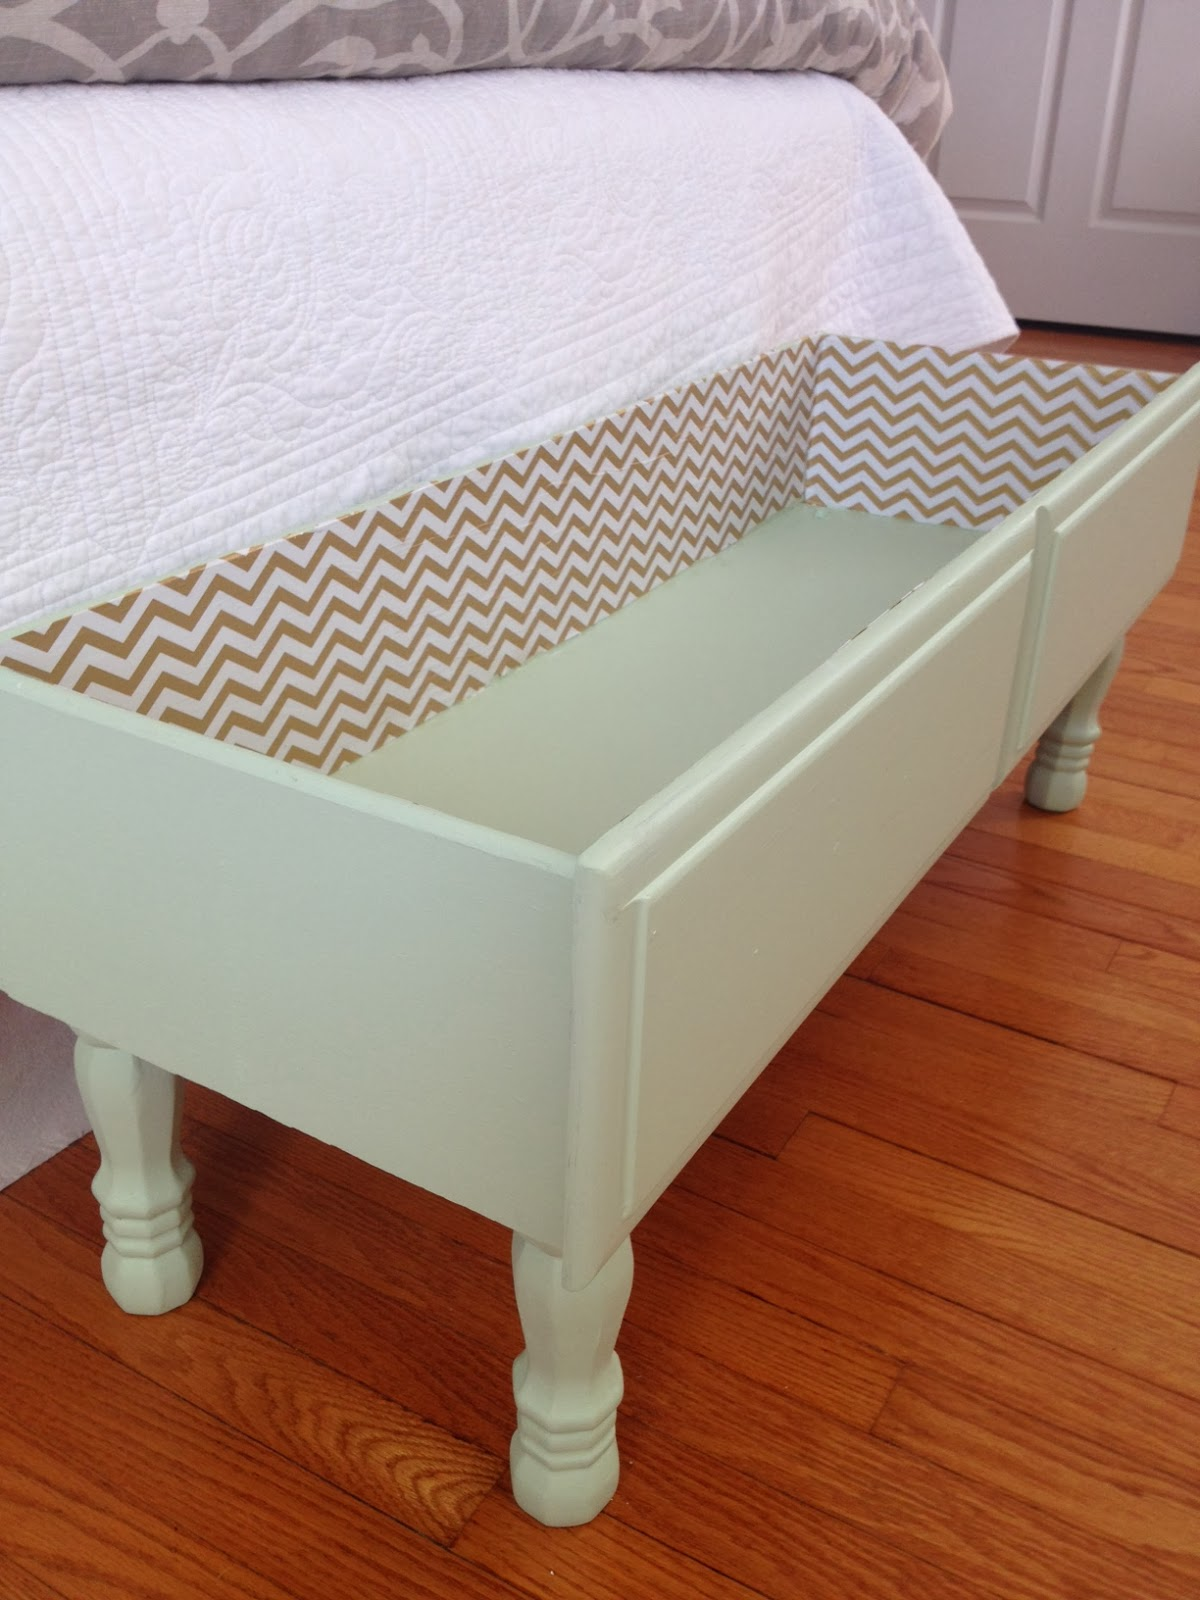 How to make dresser drawers - How To Make Dresser Drawers 48